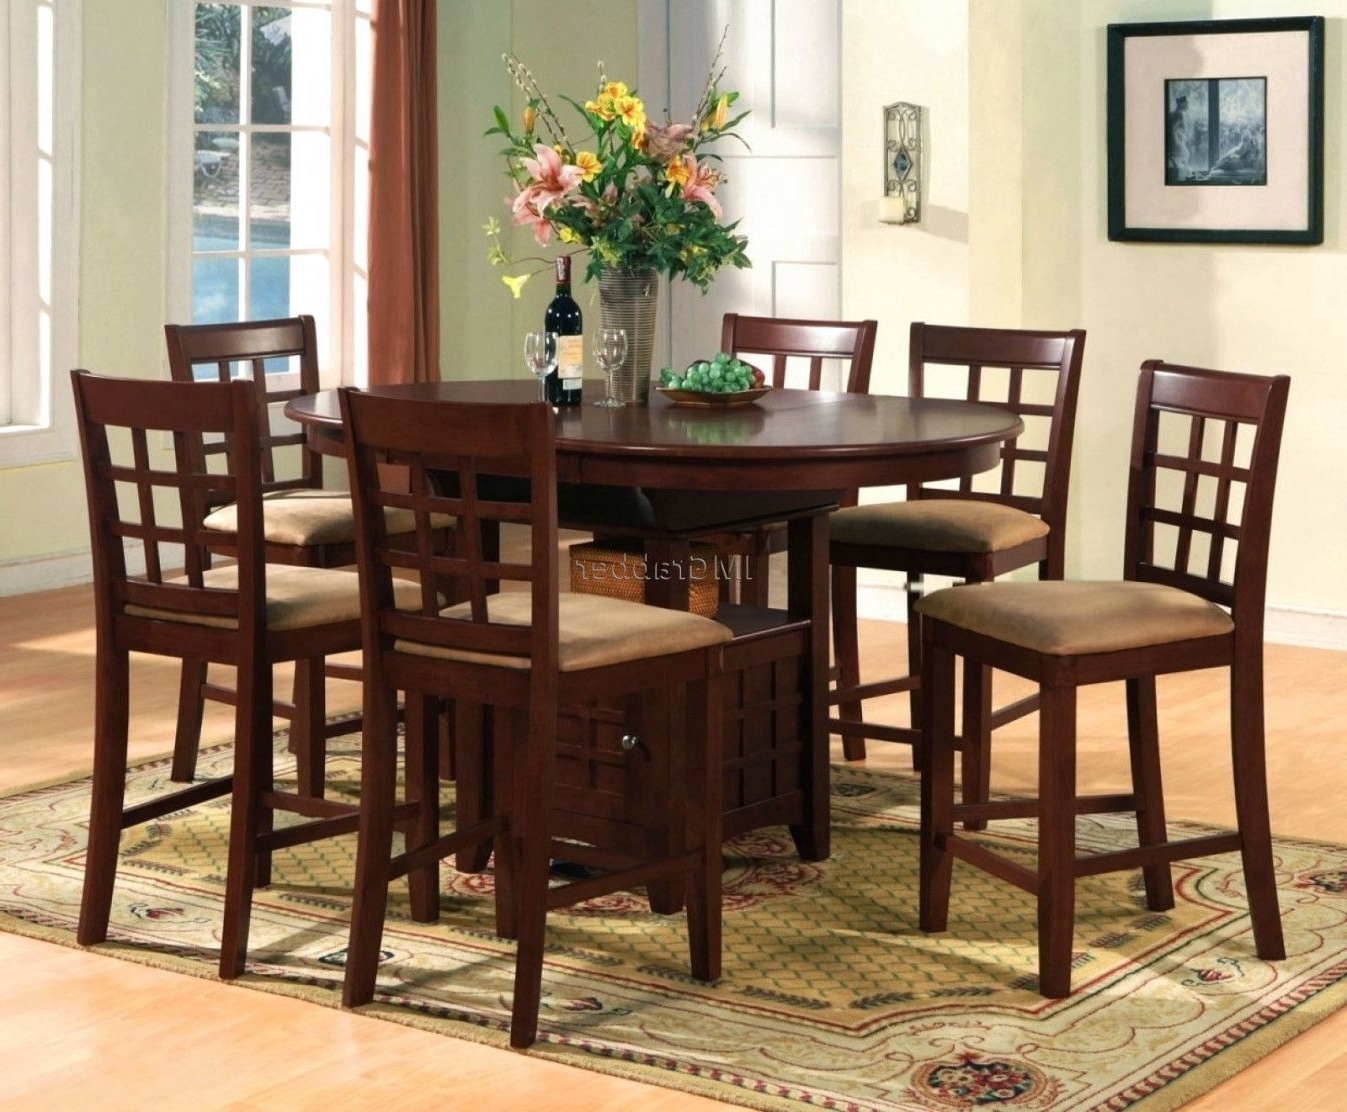 2019 Dining Room Chairs Ebay - Modern Home Furniture Check More At within Best and Newest Ebay Dining Suites